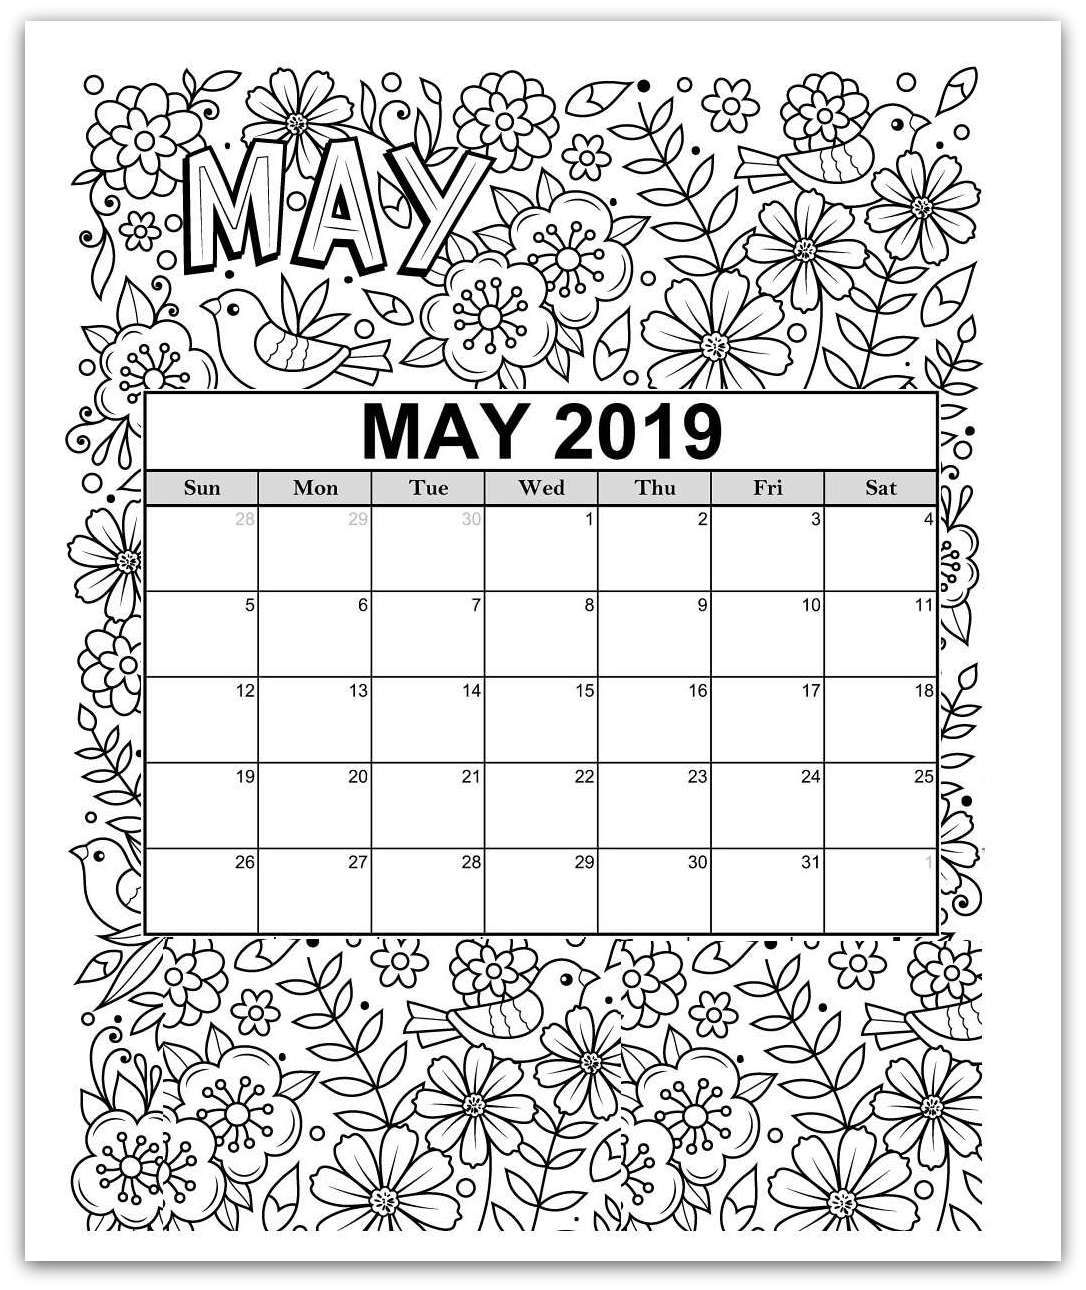 Printable Calendars 2019 May Thru December may 2019 coloring page printable calendar | 2019 calendar | Kids